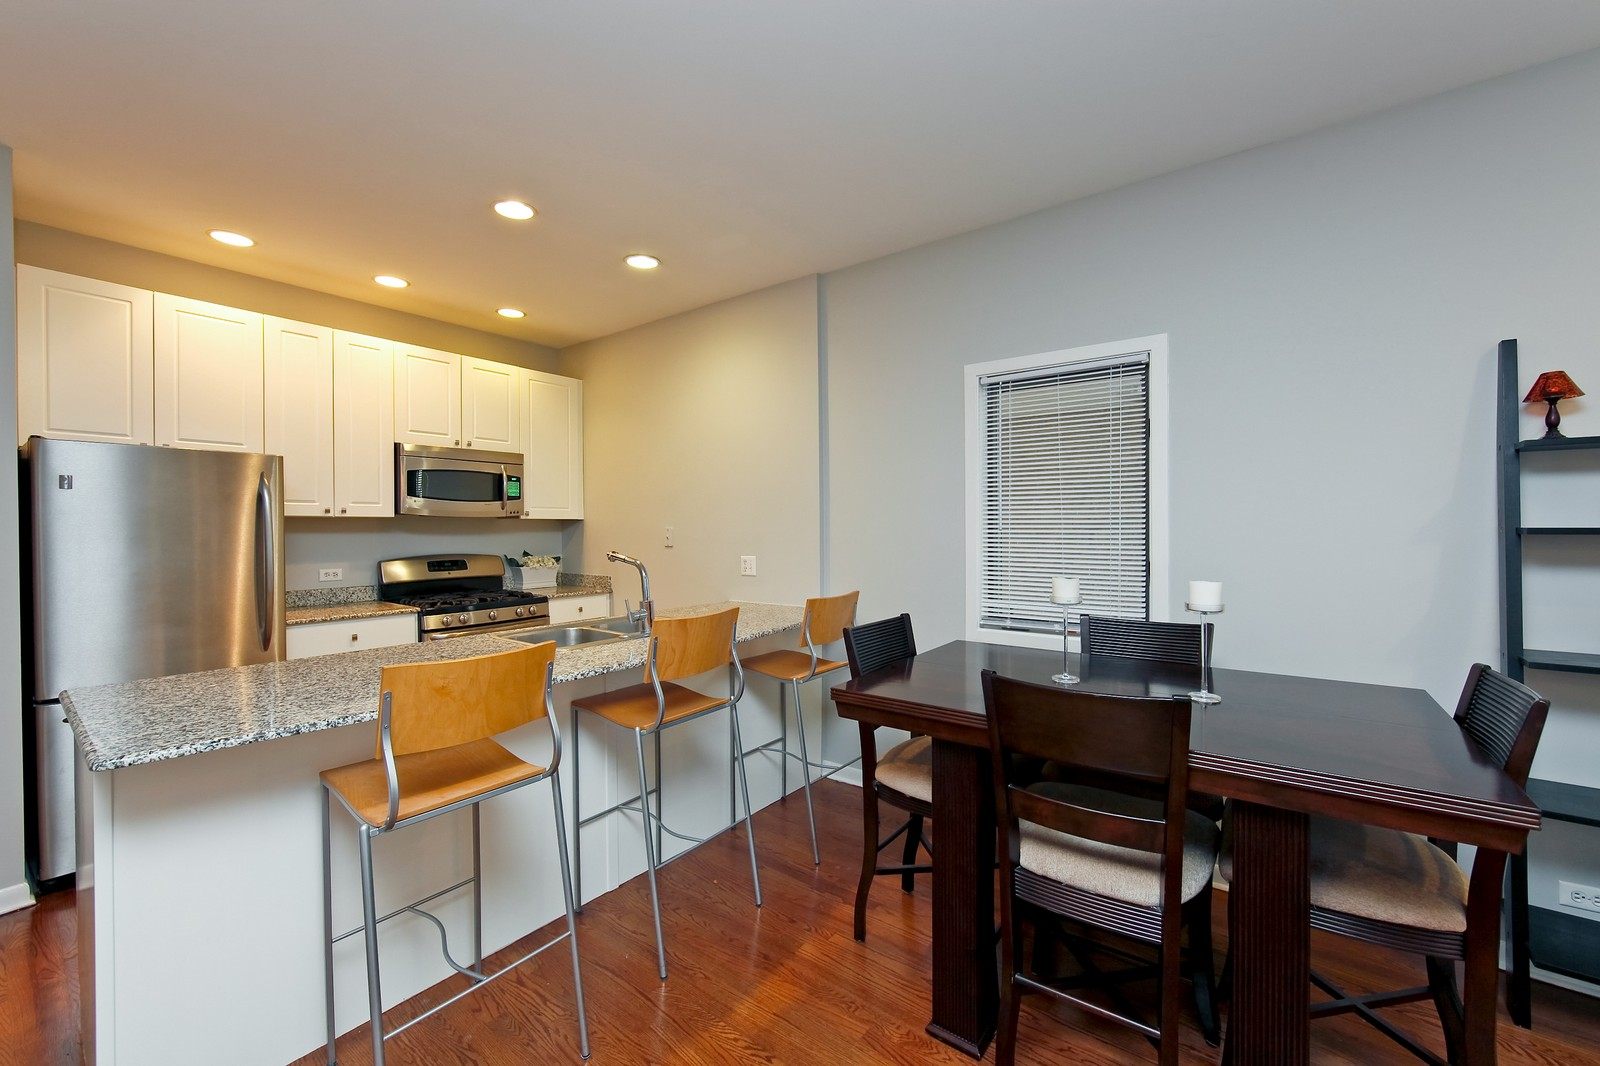 Real Estate Photography - 915 N. Racine Ave, 1NW, Chicago, IL, 60622 - Kitchen / Dining Room